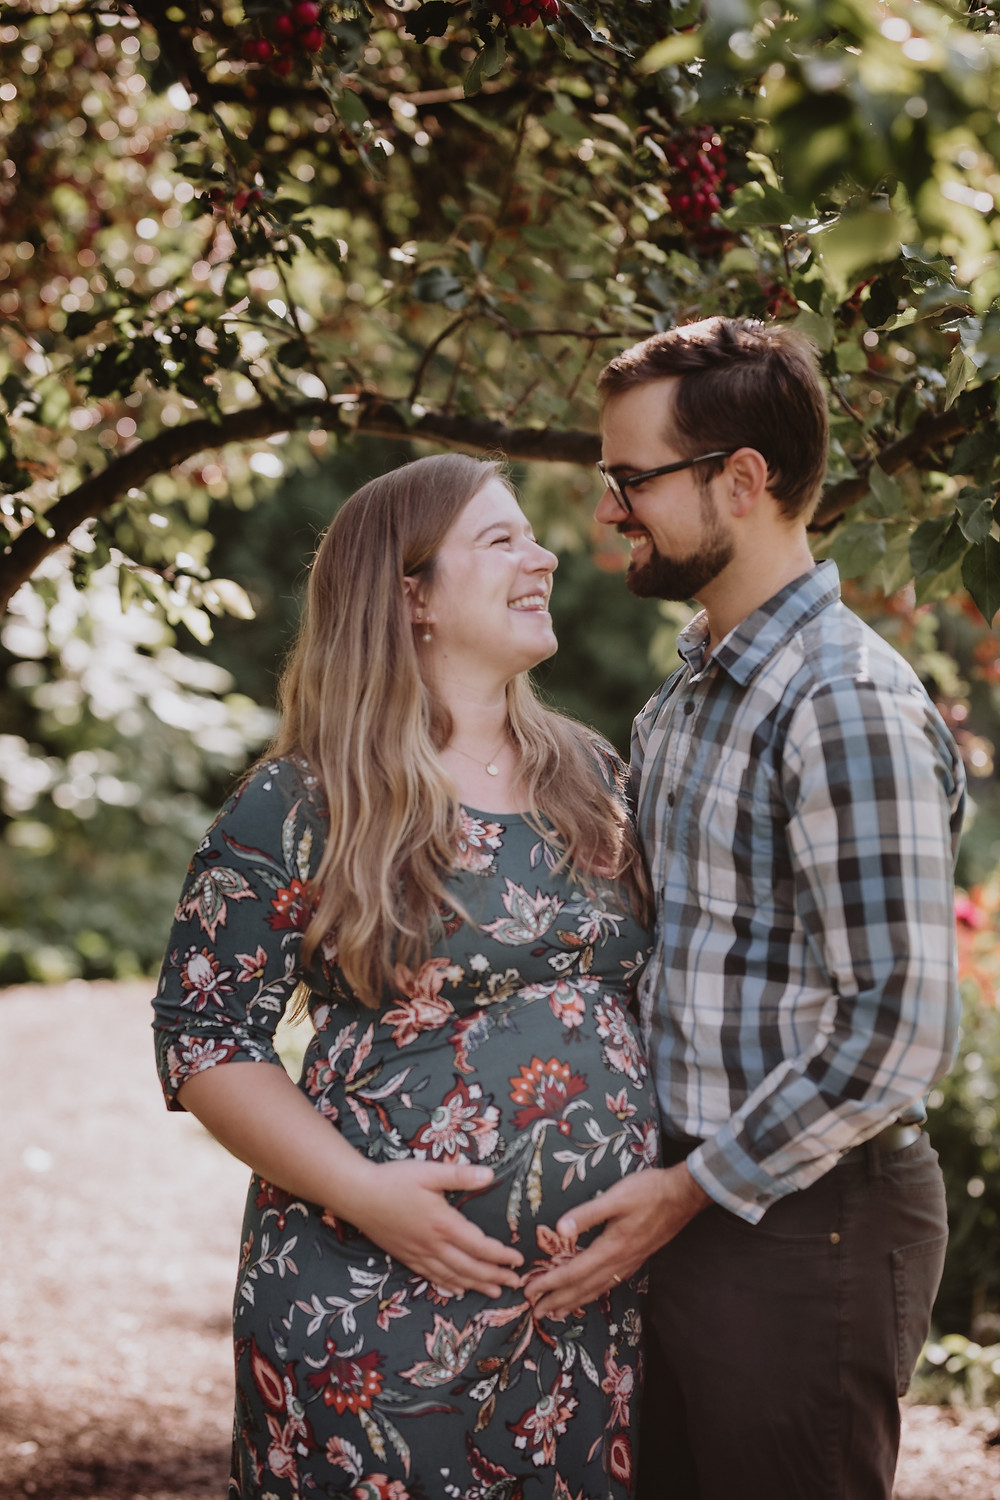 Smiling couple embraces during maternity photoshoot.